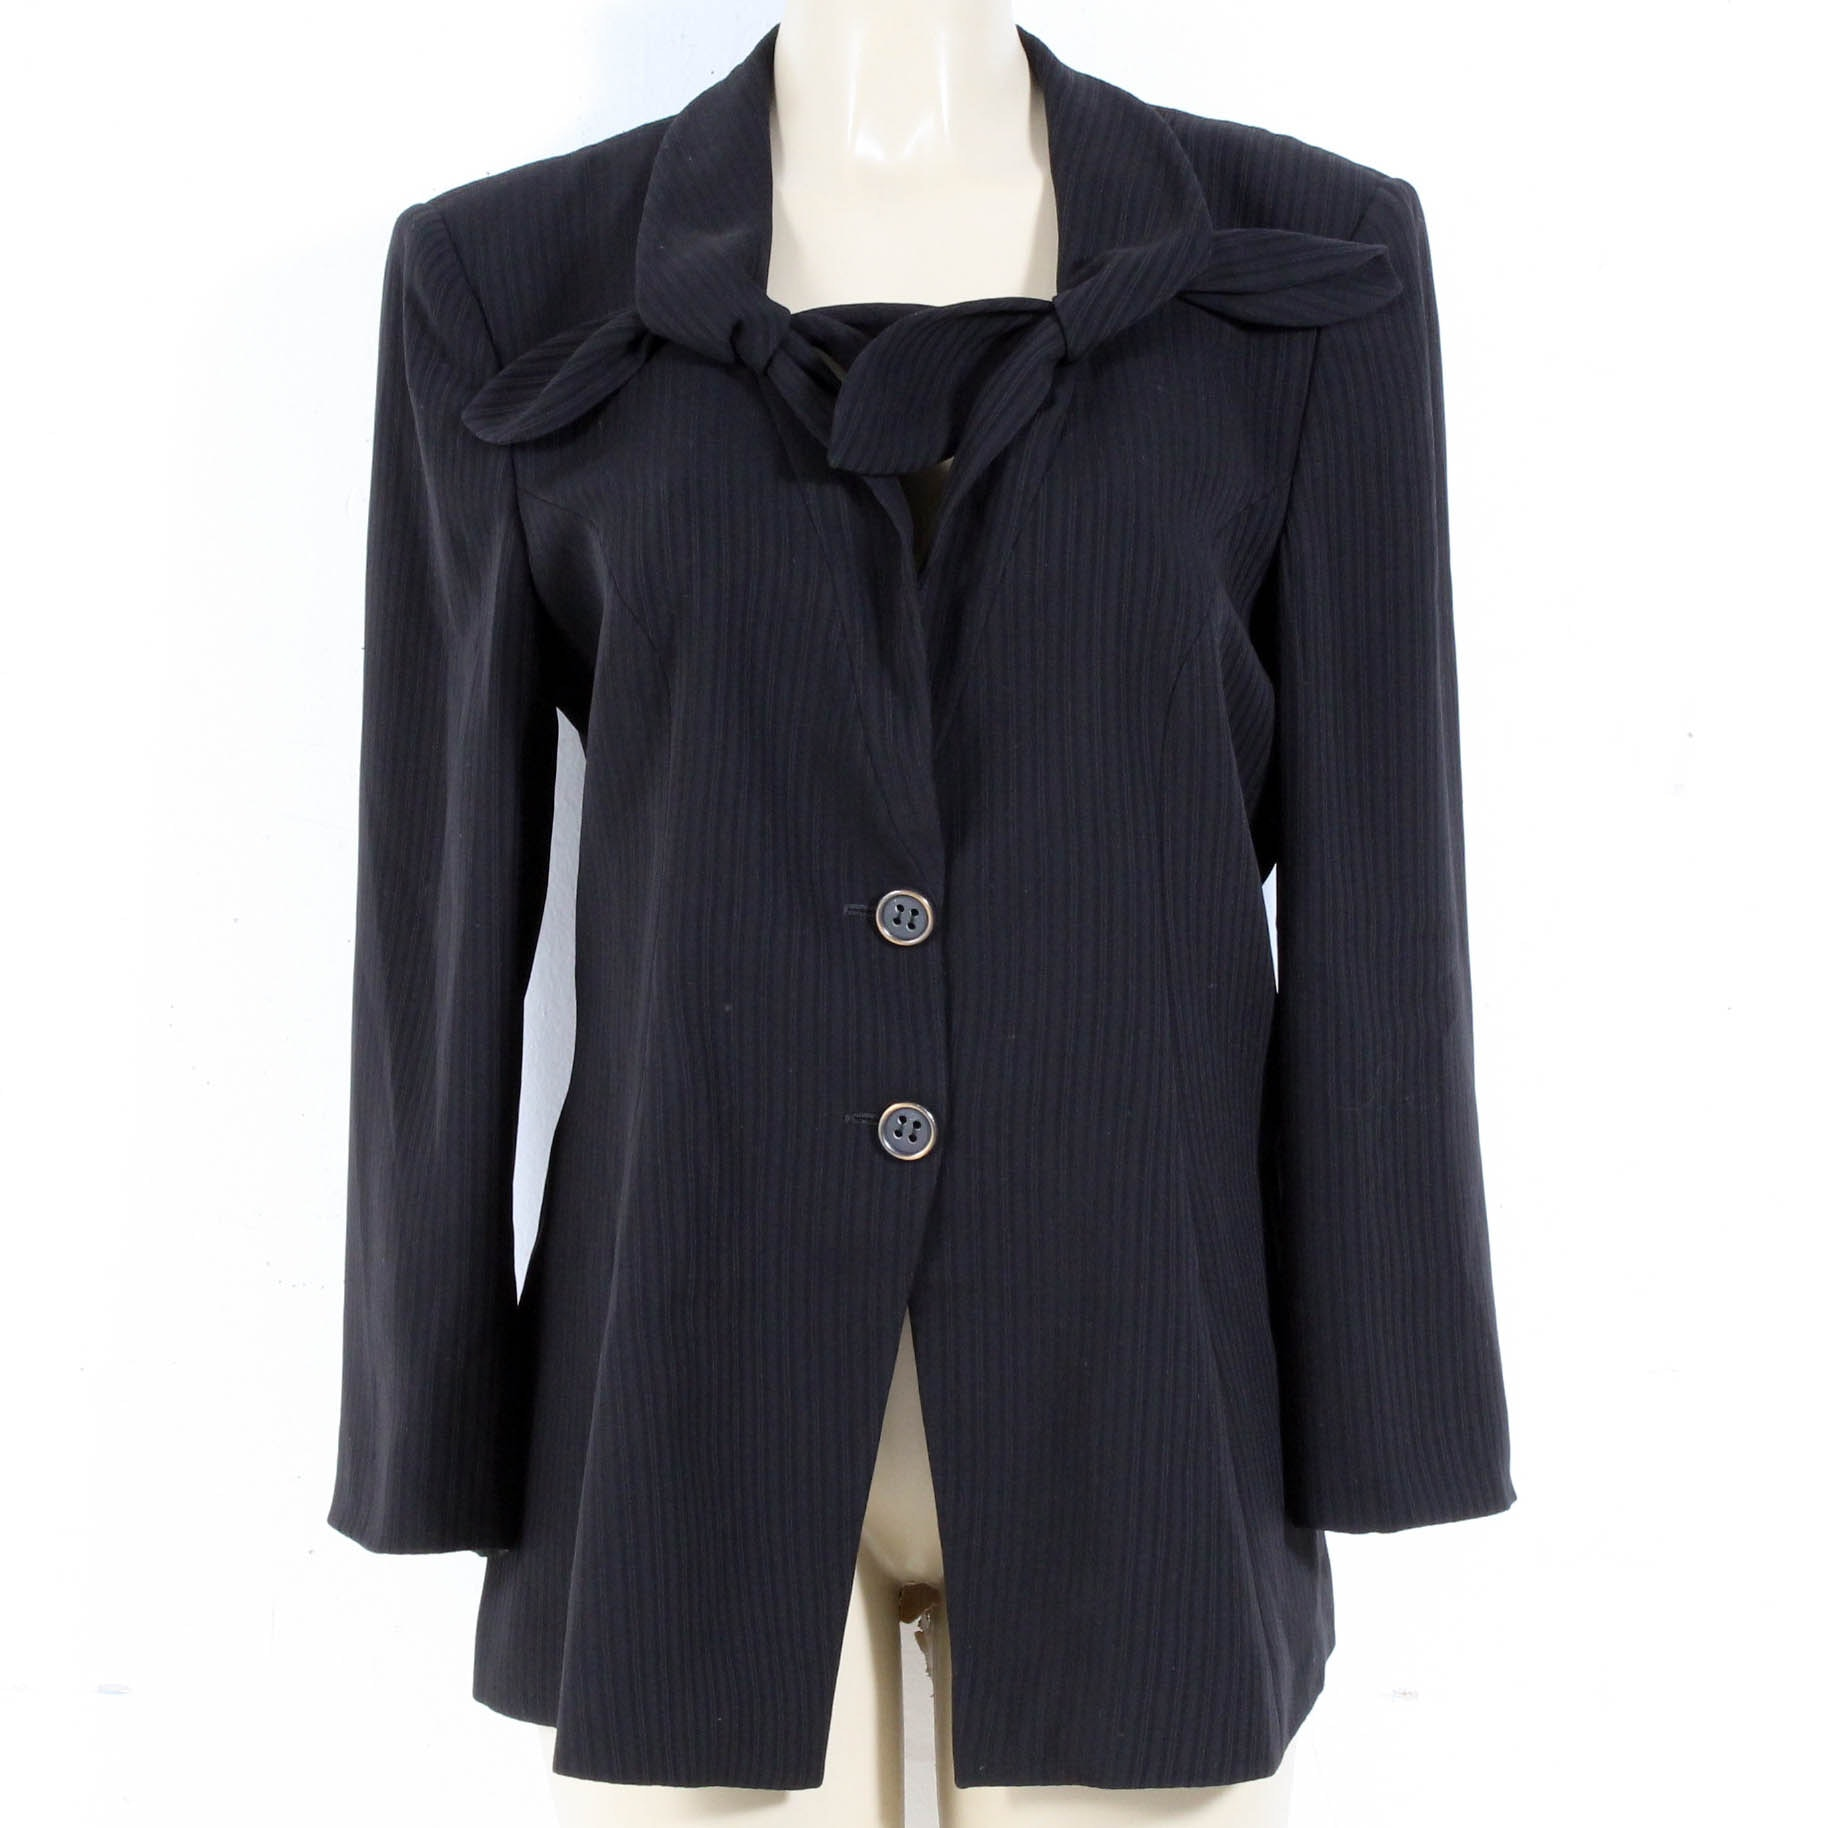 Giorgio Armani Black Suit Jacket, Made in Italy